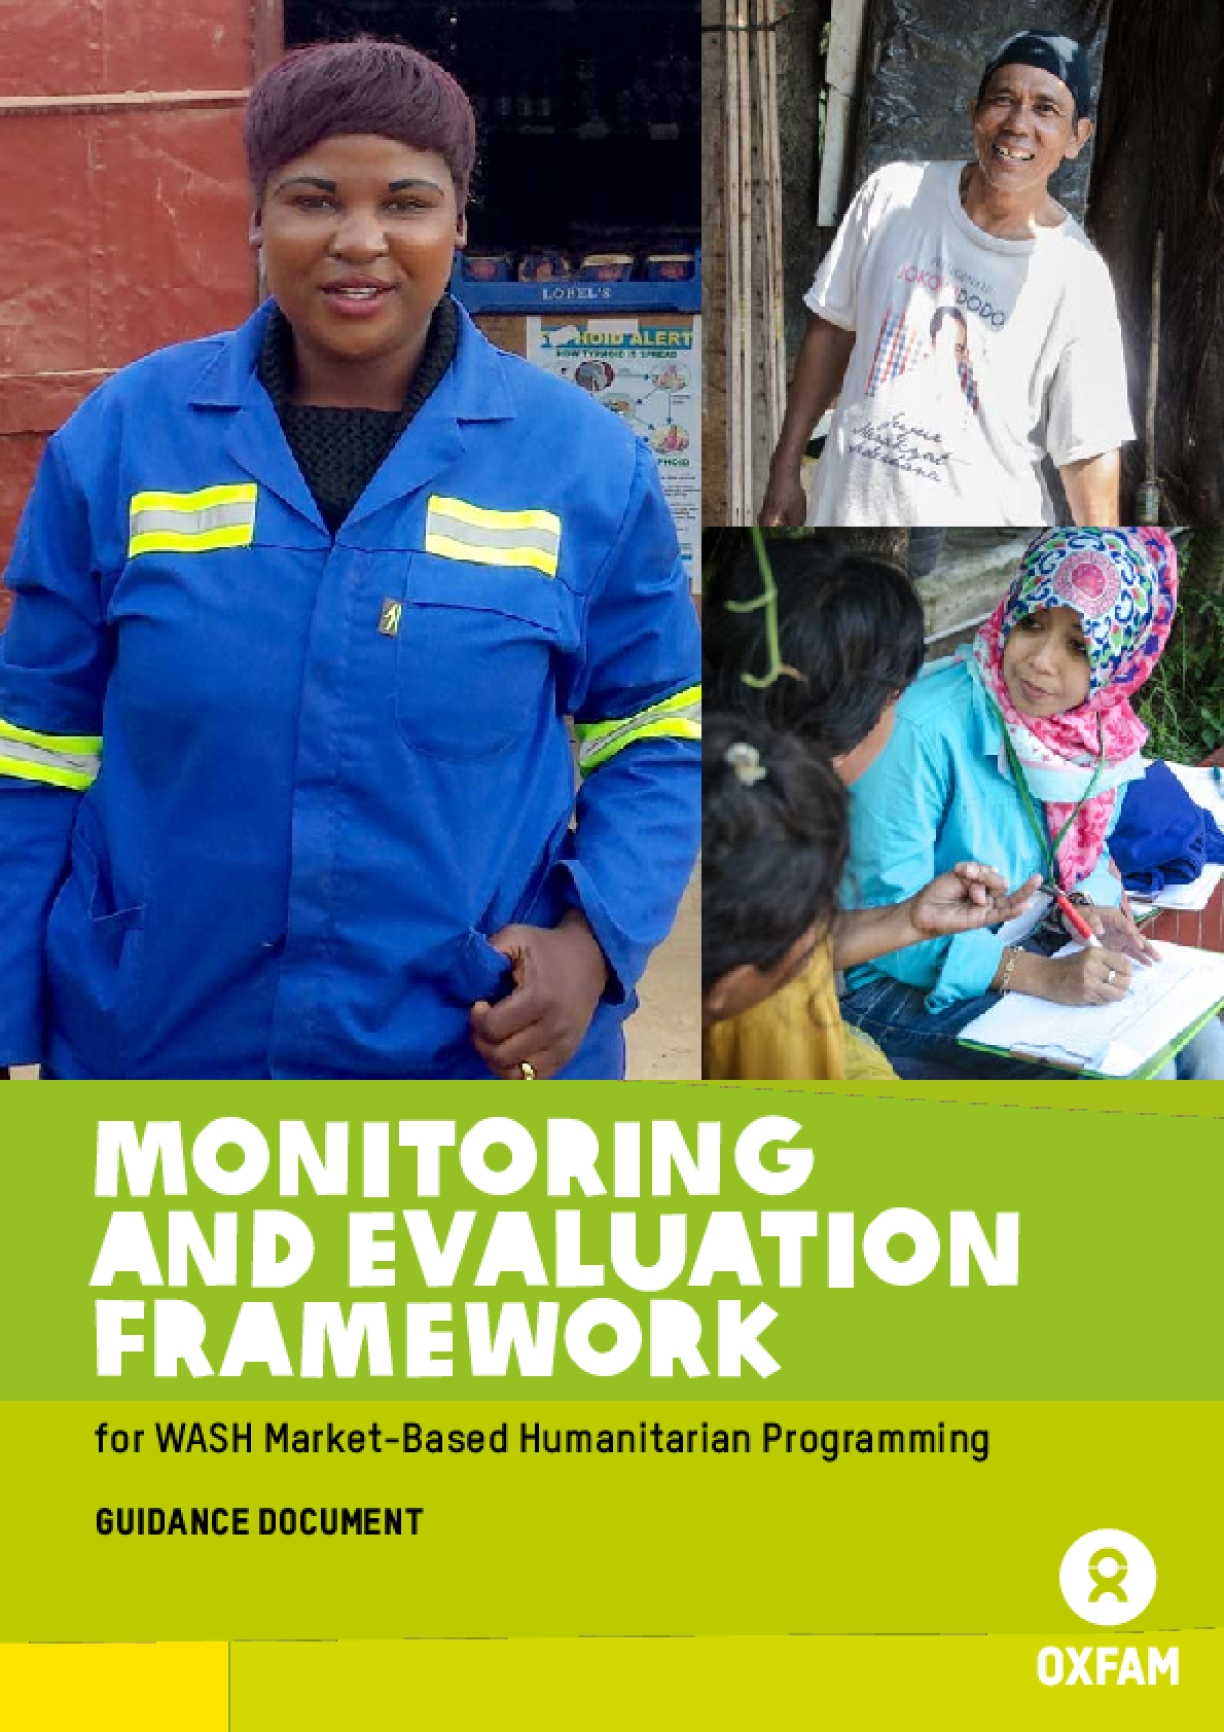 Monitoring and Evaluation Framework for WASH Market-Based Humanitarian Programming